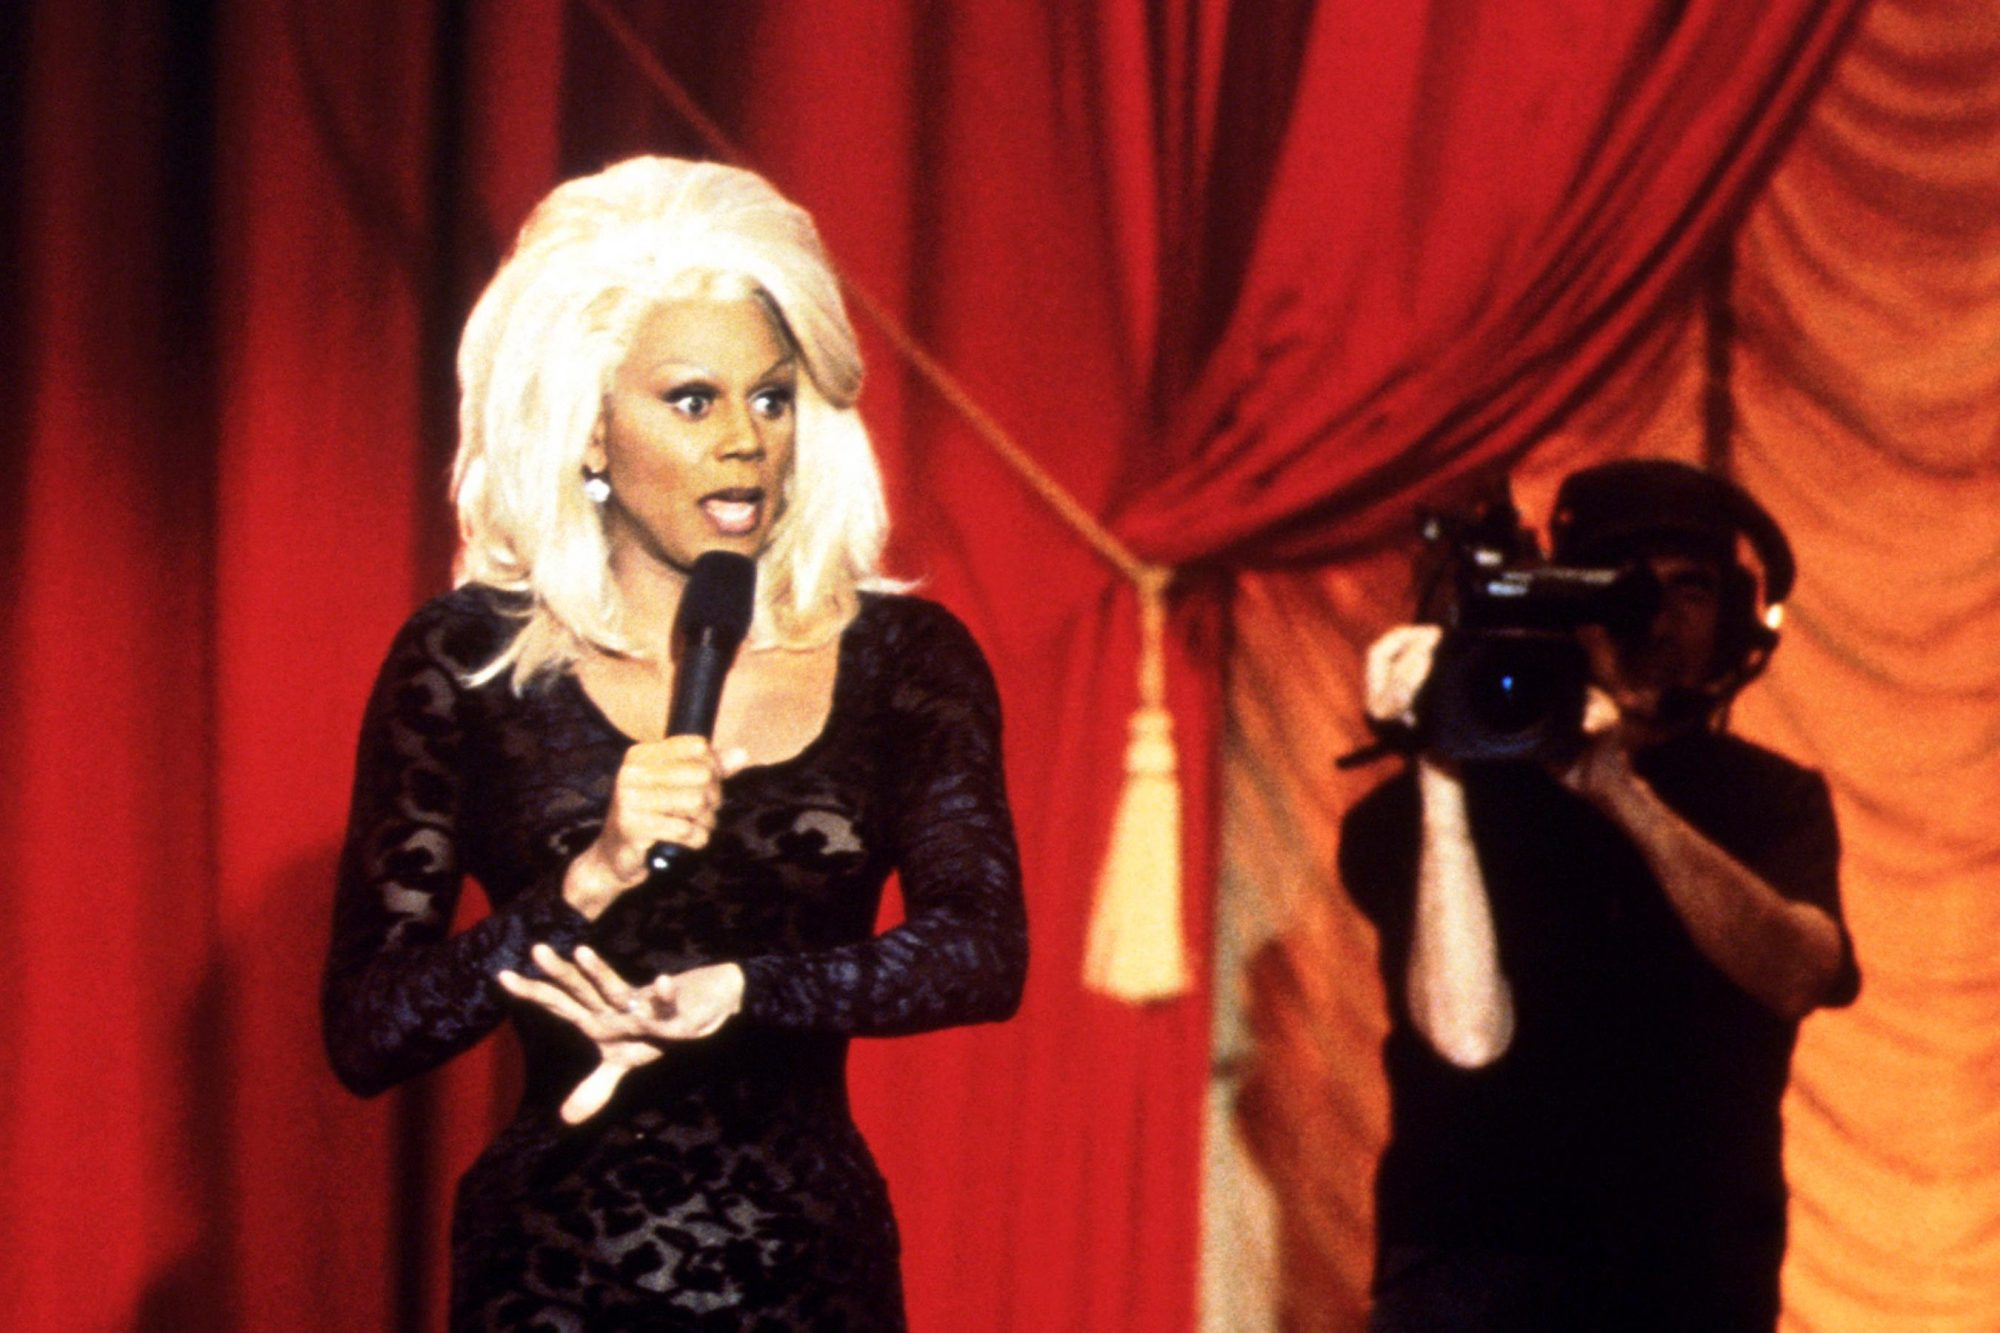 THE RUPAUL SHOW, RuPaul, 1996-98. © VH1 / Courtesy: Everett Collection